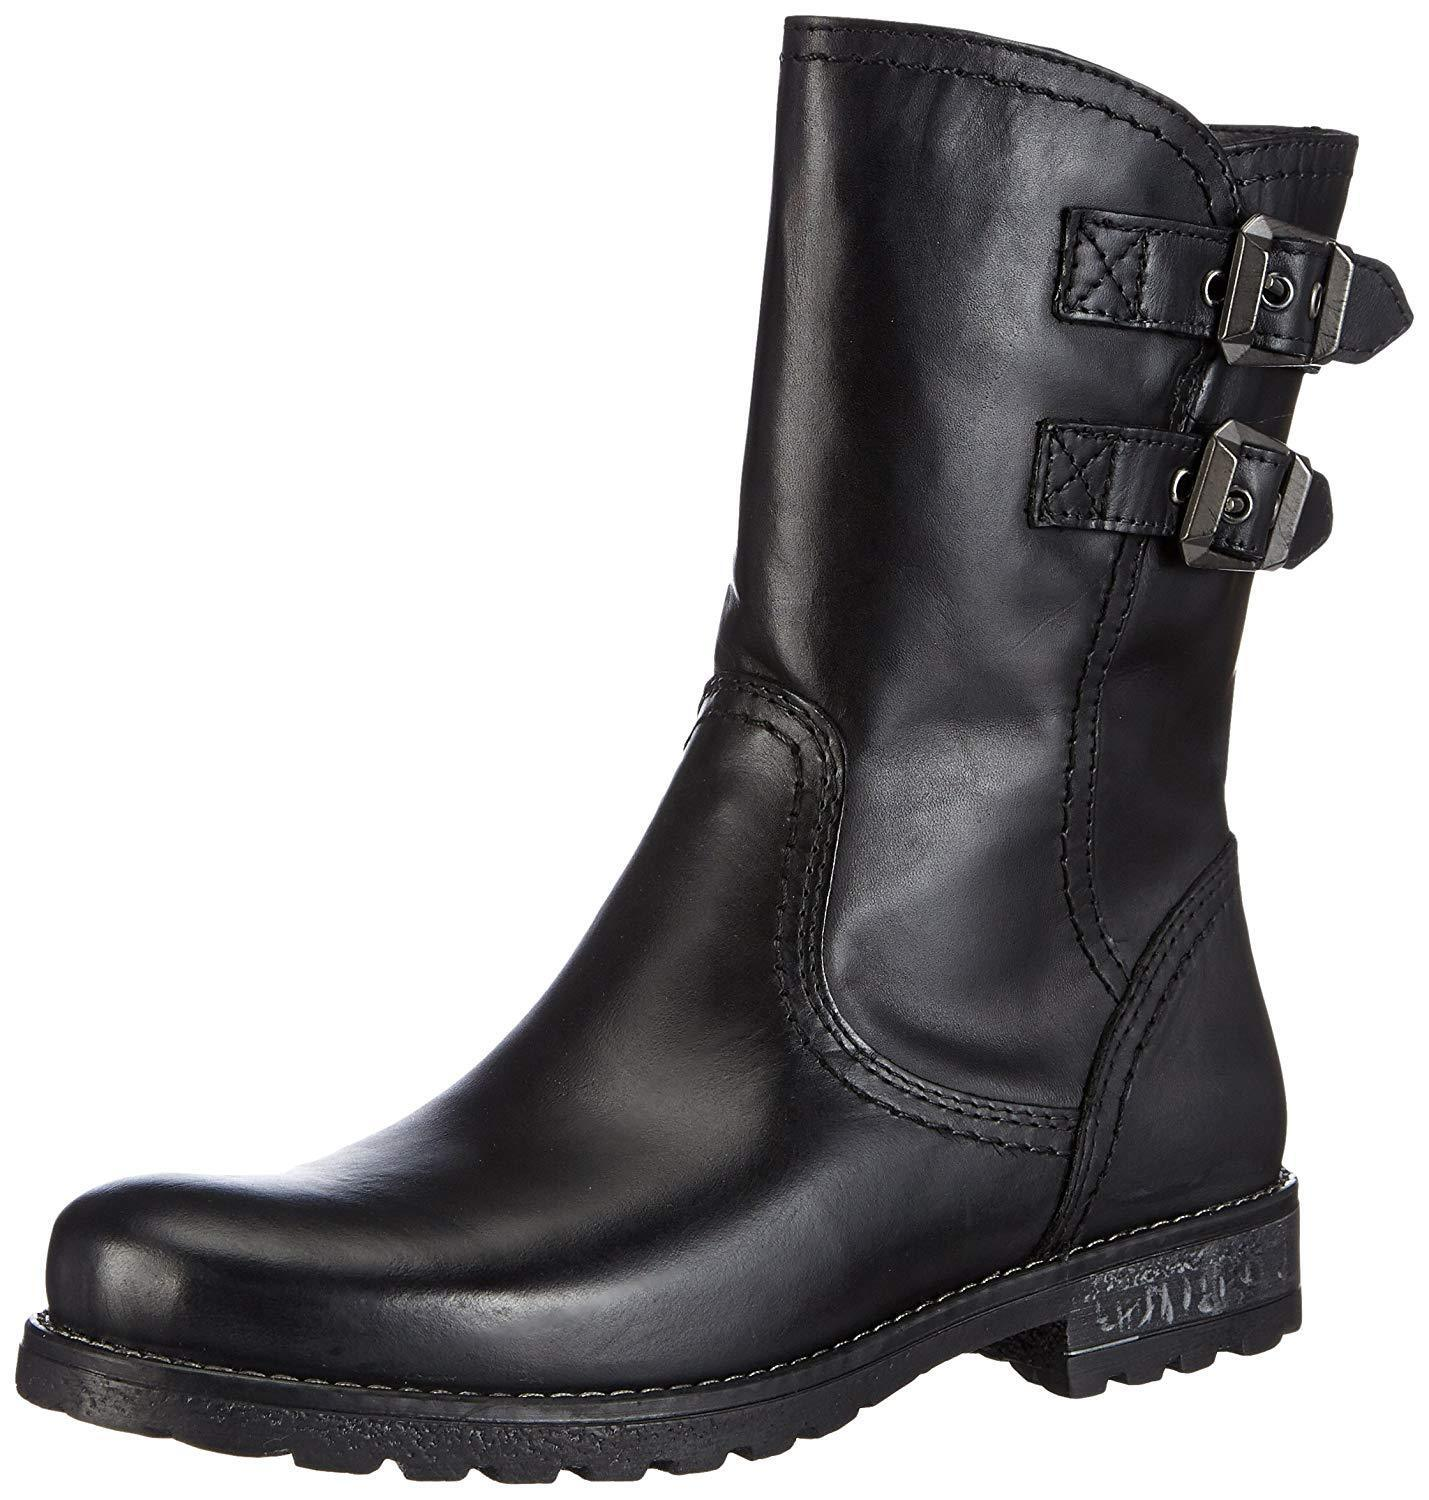 Tamaris 25436 Black Leather Everyday Winter Ankle Boots, NARROW FIT Size UK8